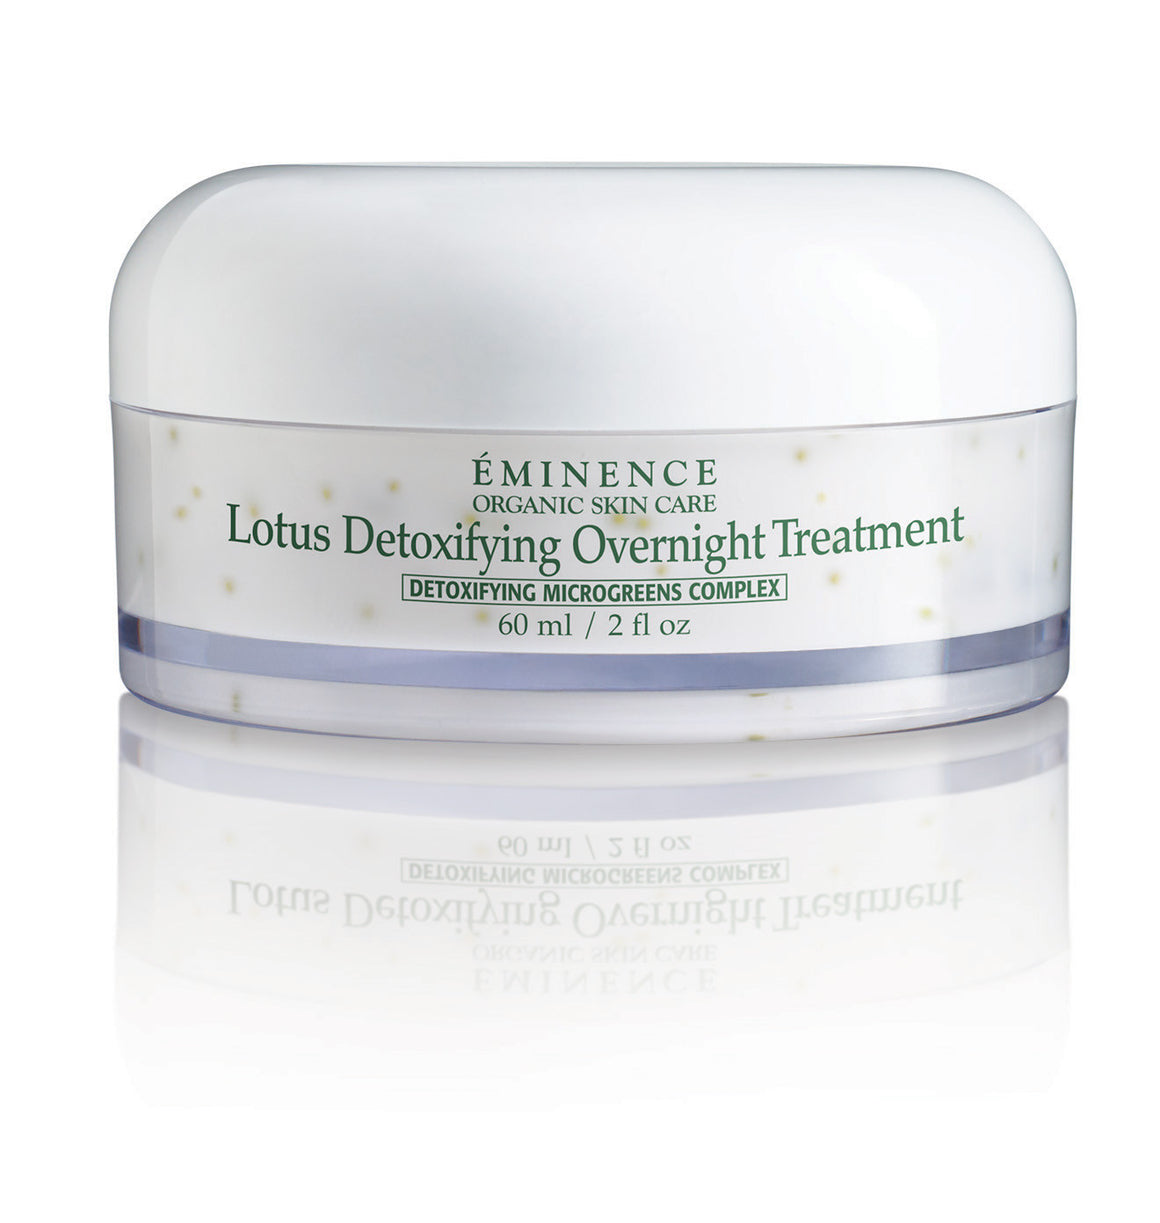 Eminence Organic Microgreens Detox Collection Lotus Overnight Treatment